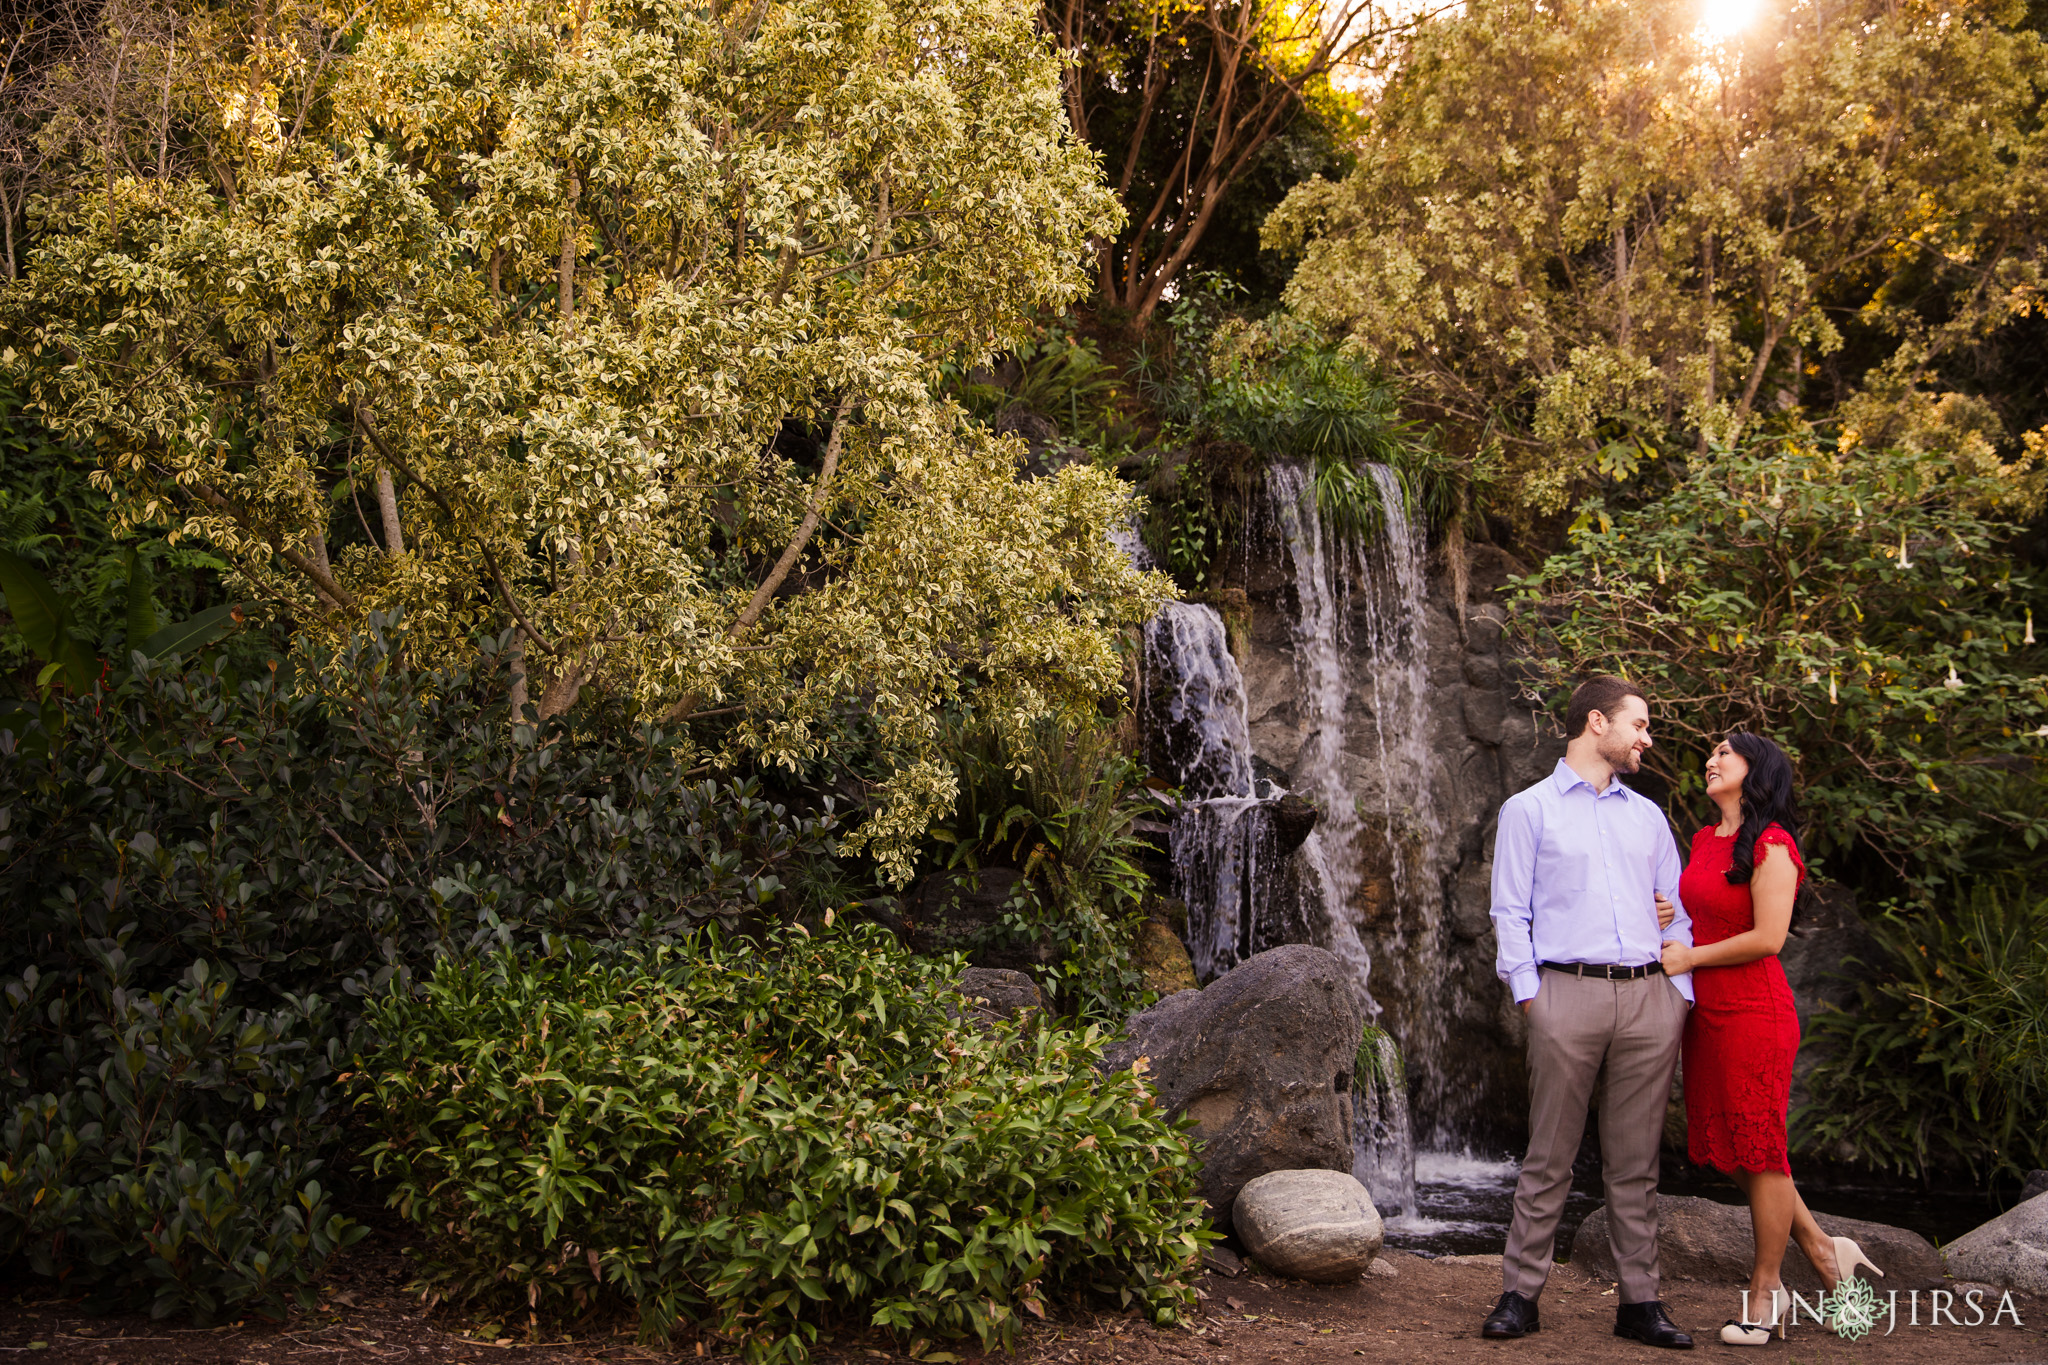 zbf los angeles arboretum engagement photography